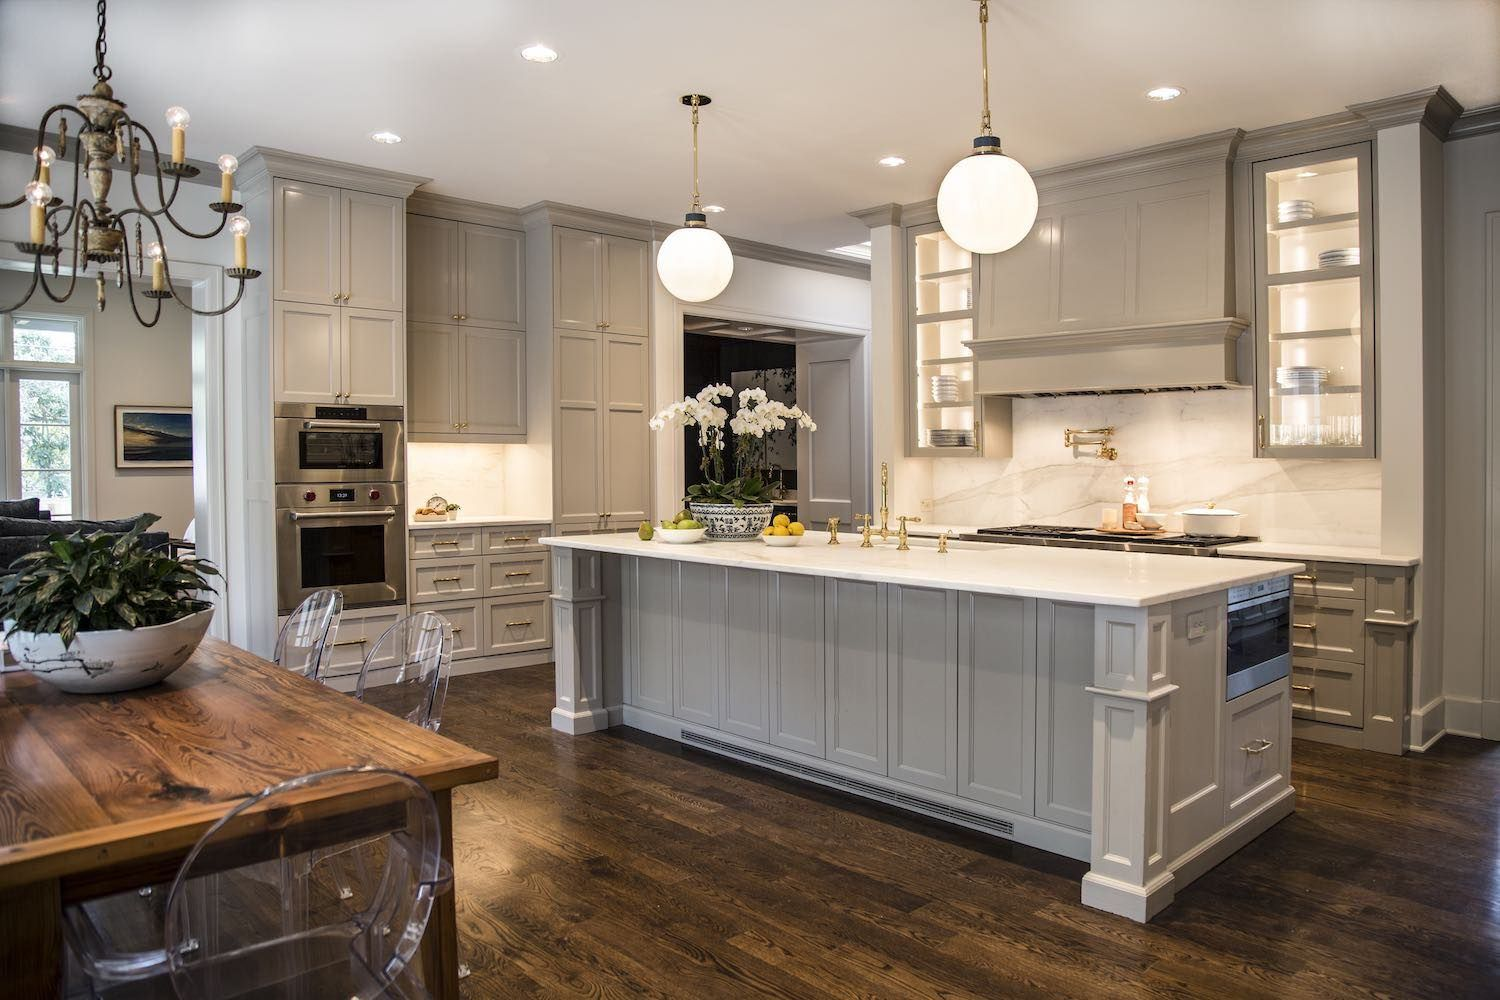 Amazing Grey Paint Olmos Park Kitchen Painted Cabinets Lacquered In Sherwin